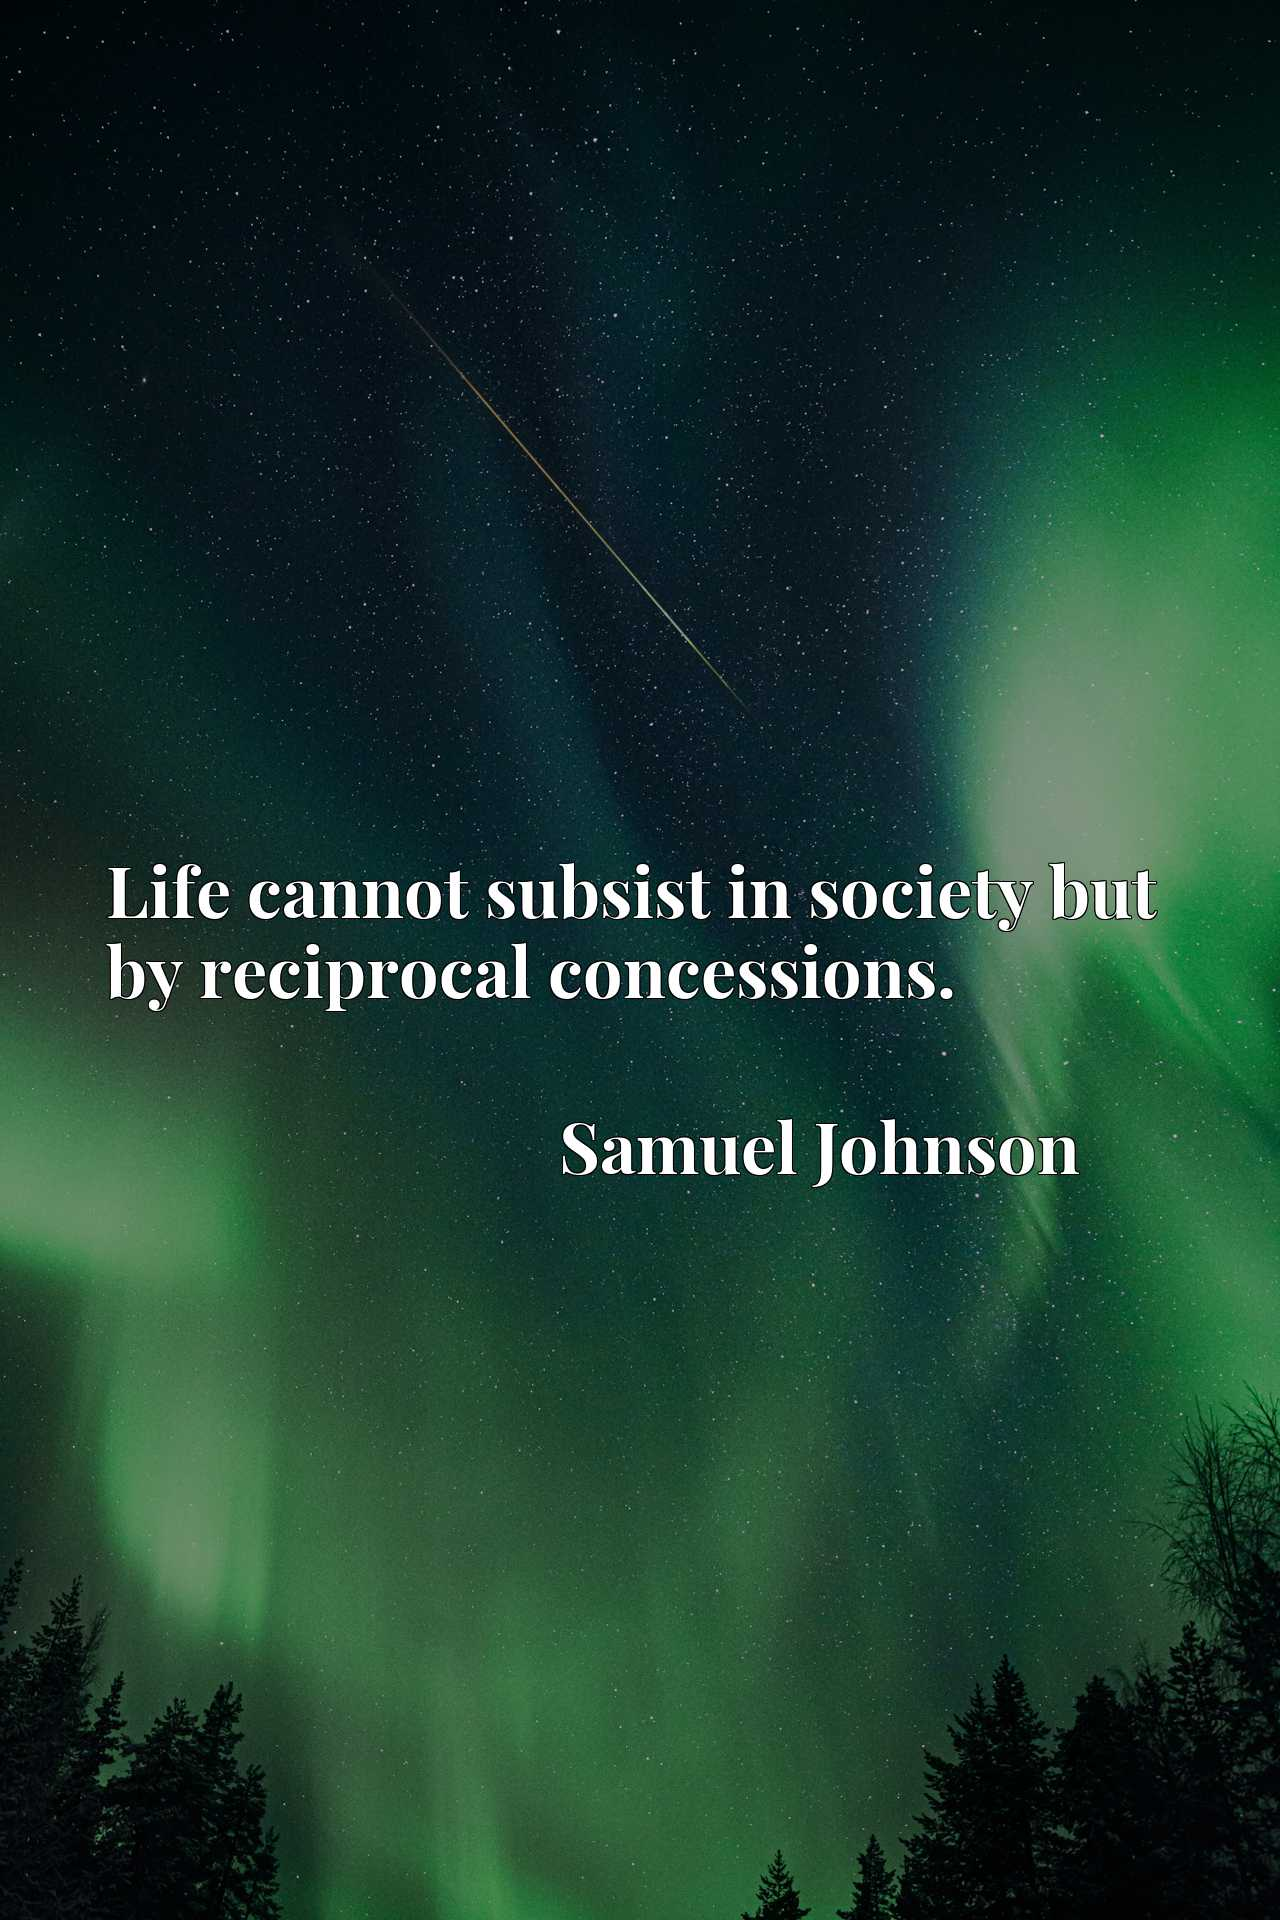 Quote Picture :Life cannot subsist in society but by reciprocal concessions.